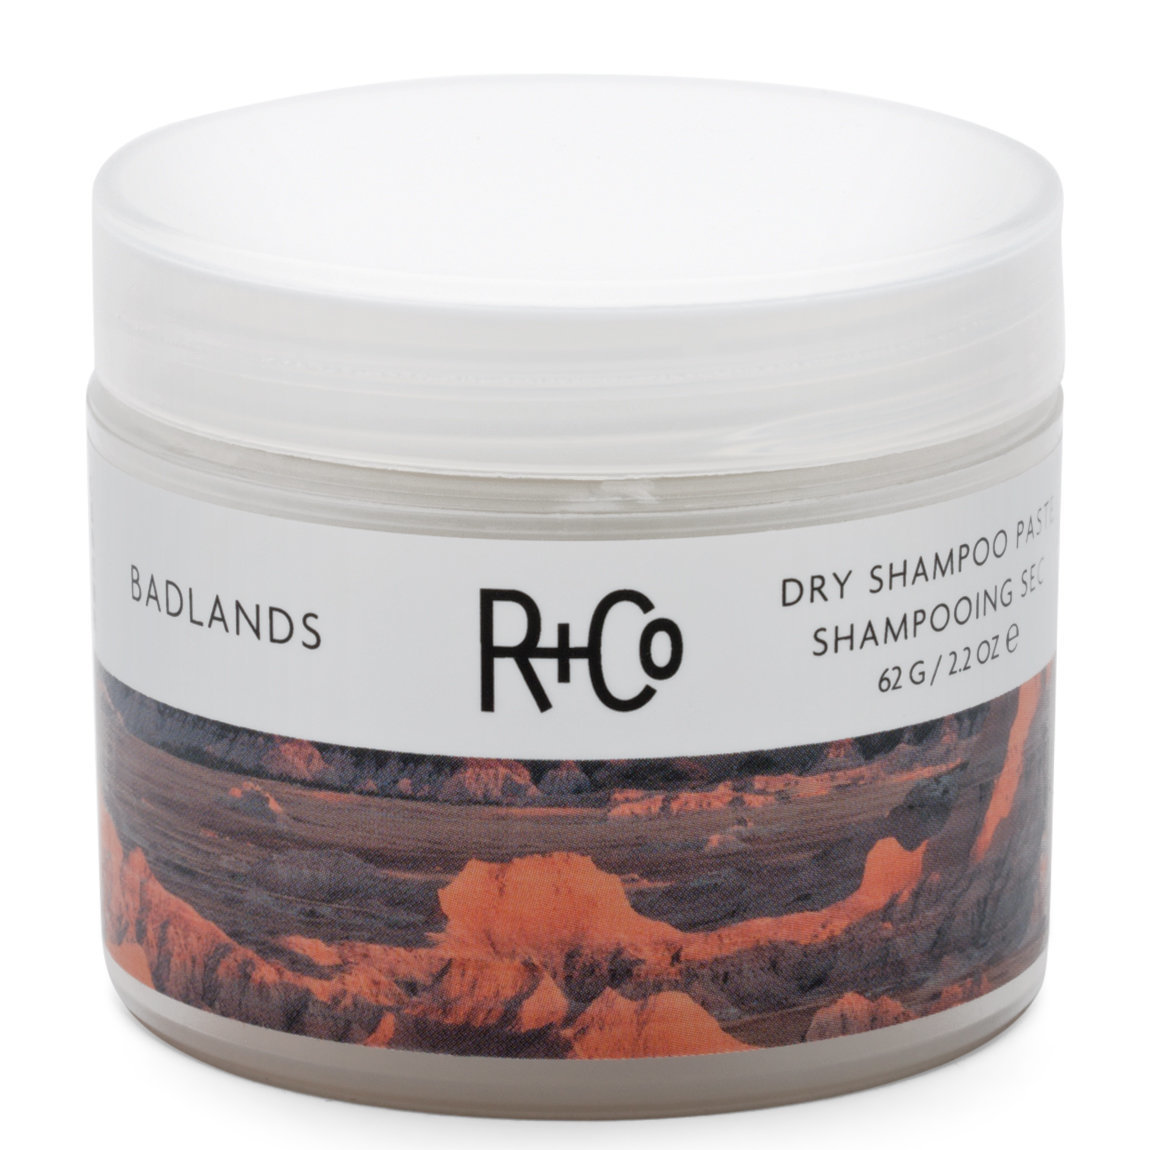 R+Co Badlands Dry Shampoo product swatch.